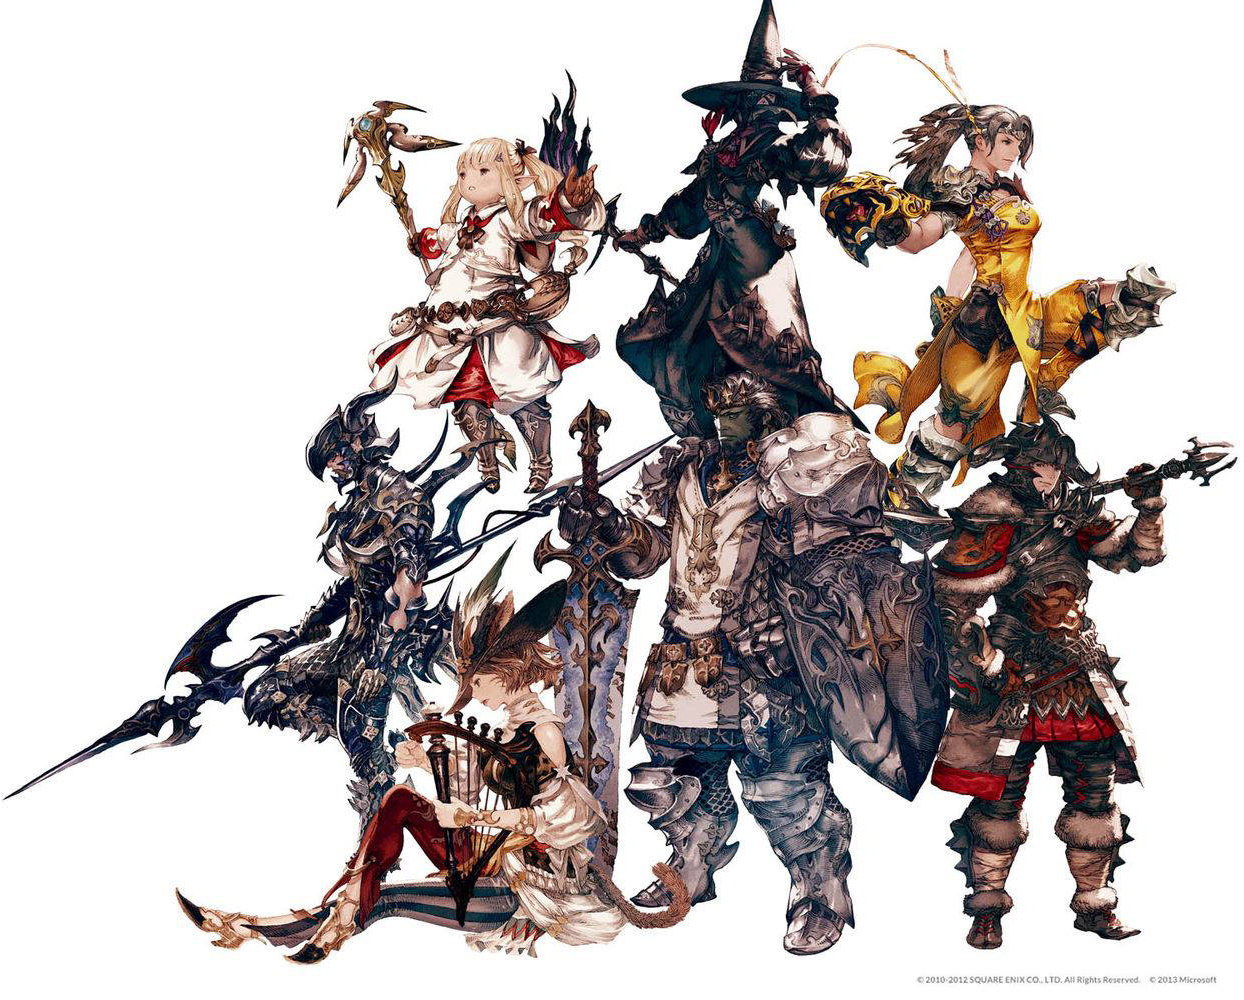 Final Fantasy XIV Fan and Concept Art - PlayStation LifeStyle